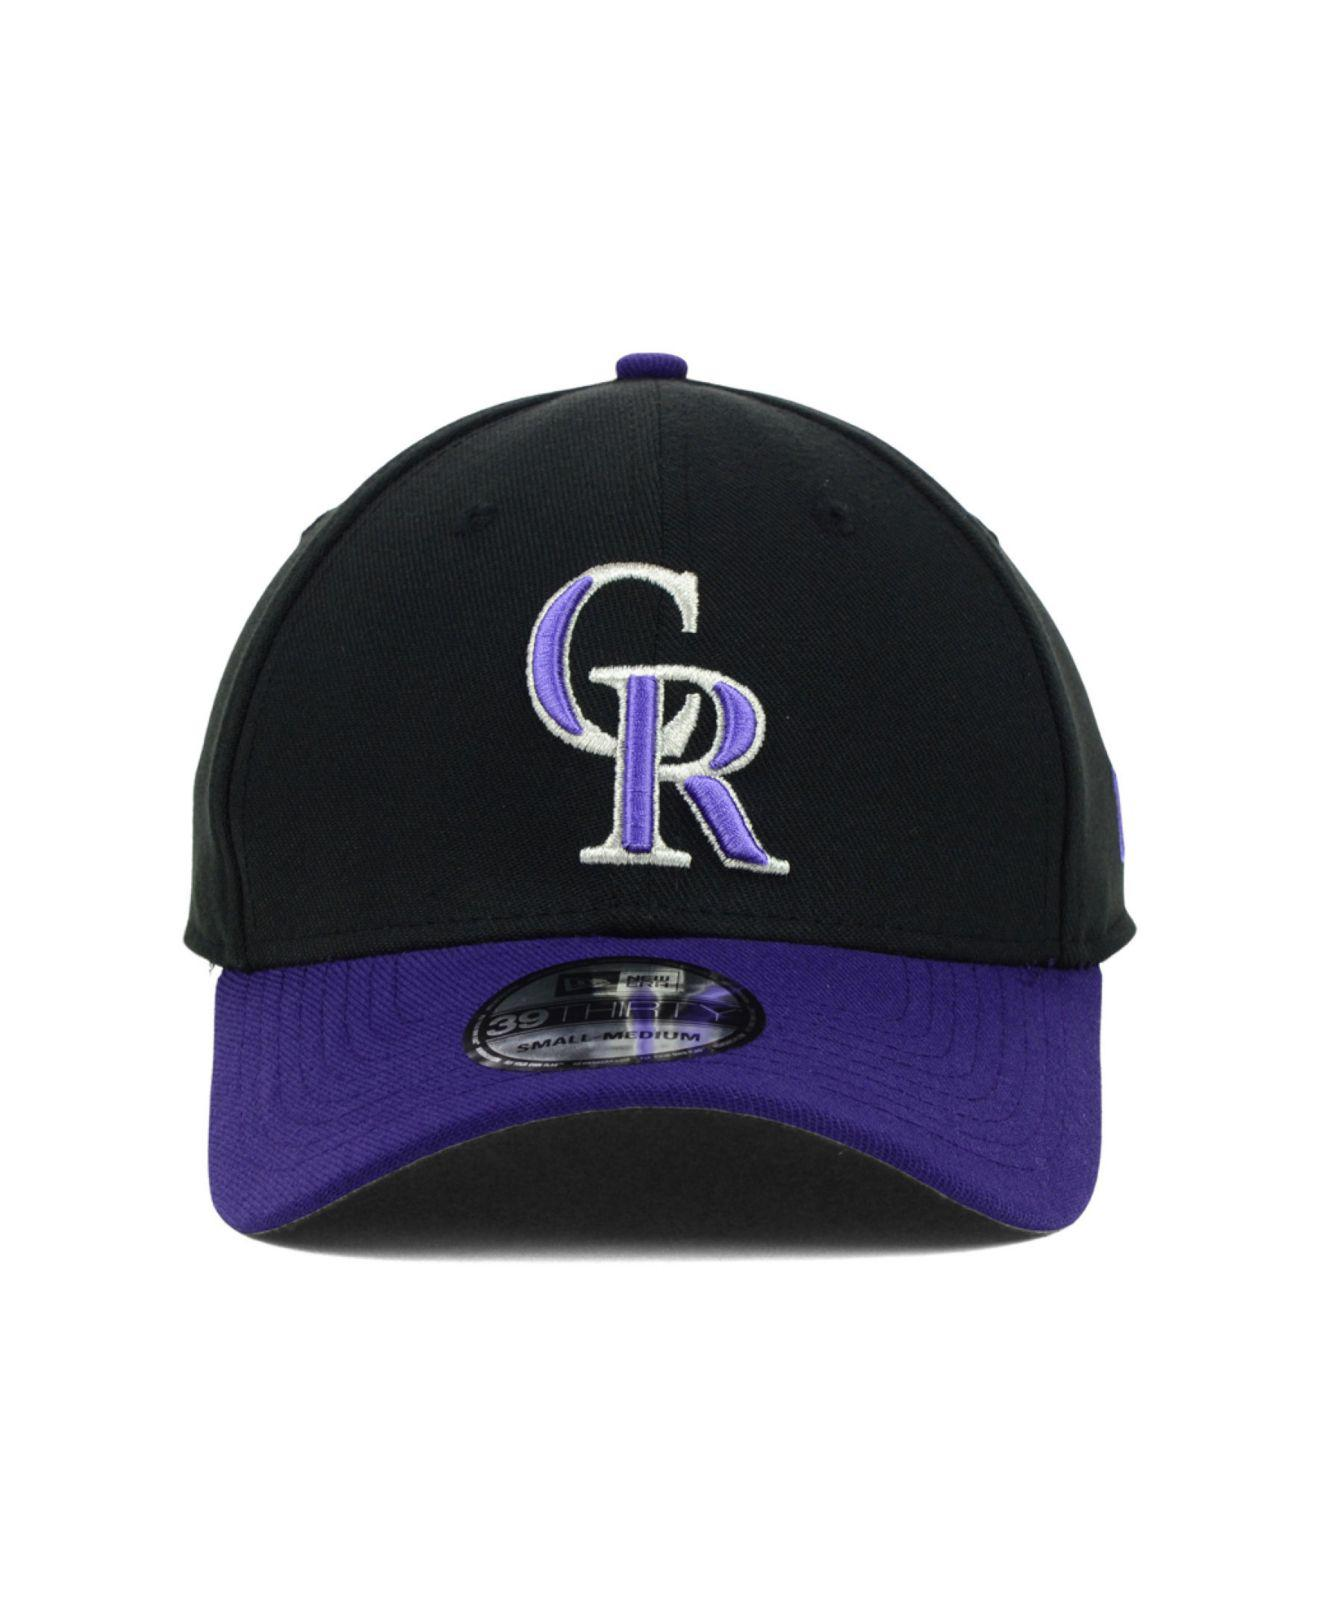 a243047a732a2 ... where to buy lyst ktz colorado rockies mlb team classic 39thirty cap in  black for men